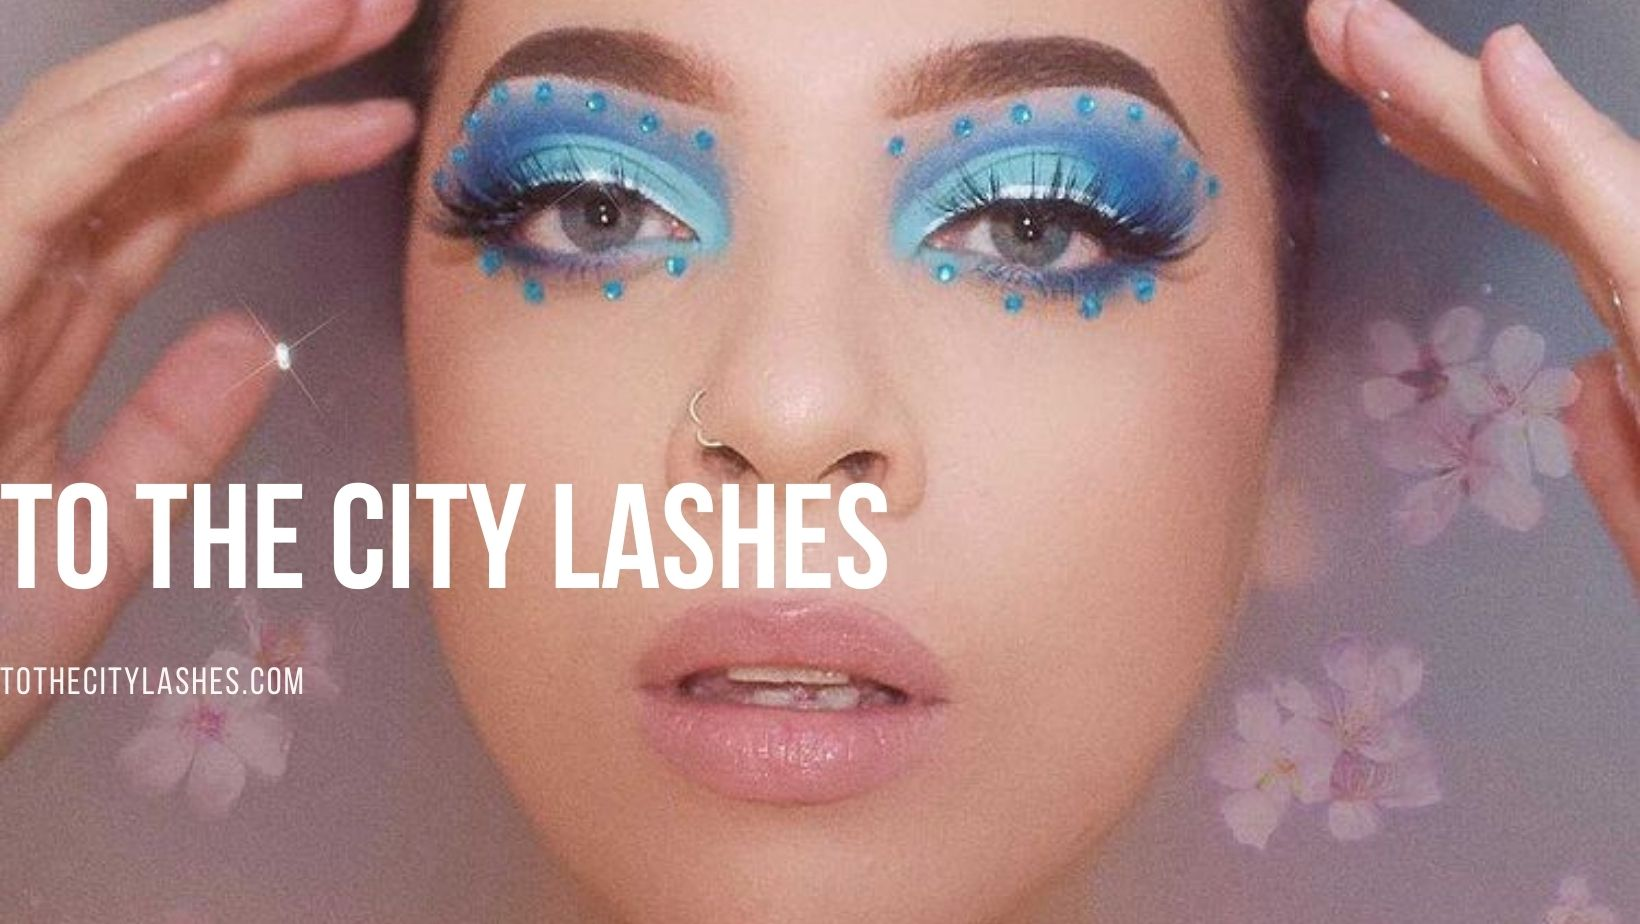 Online store of eye lashes